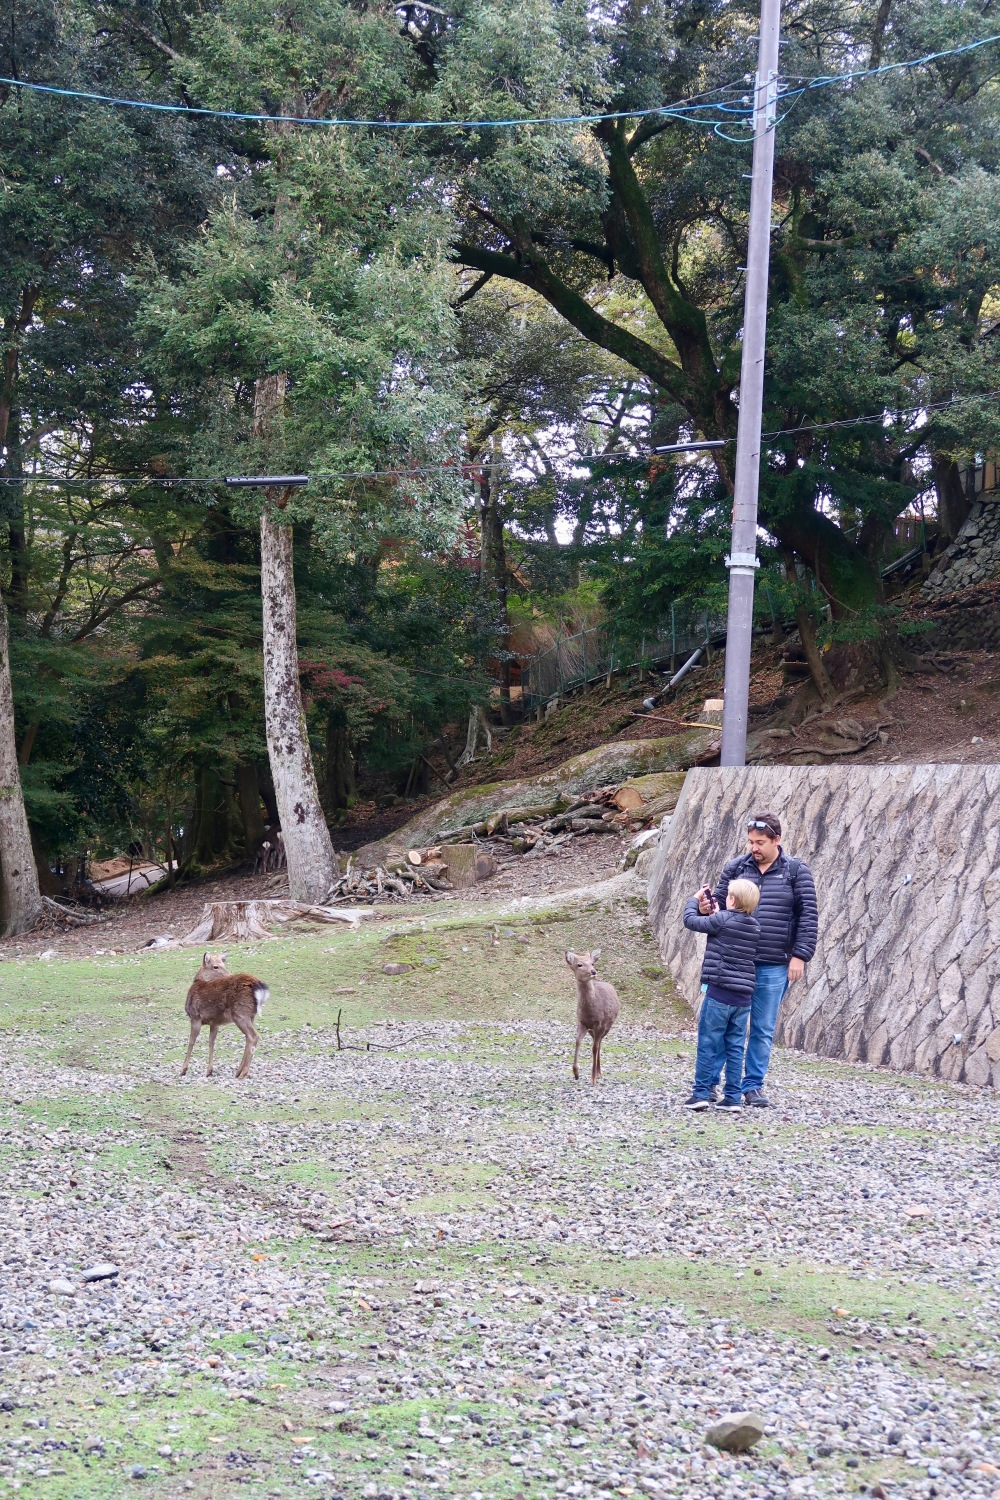 These two weren't interacting with these deer, but playing pokemon-go, which is quite good for being informed about all the historical sites